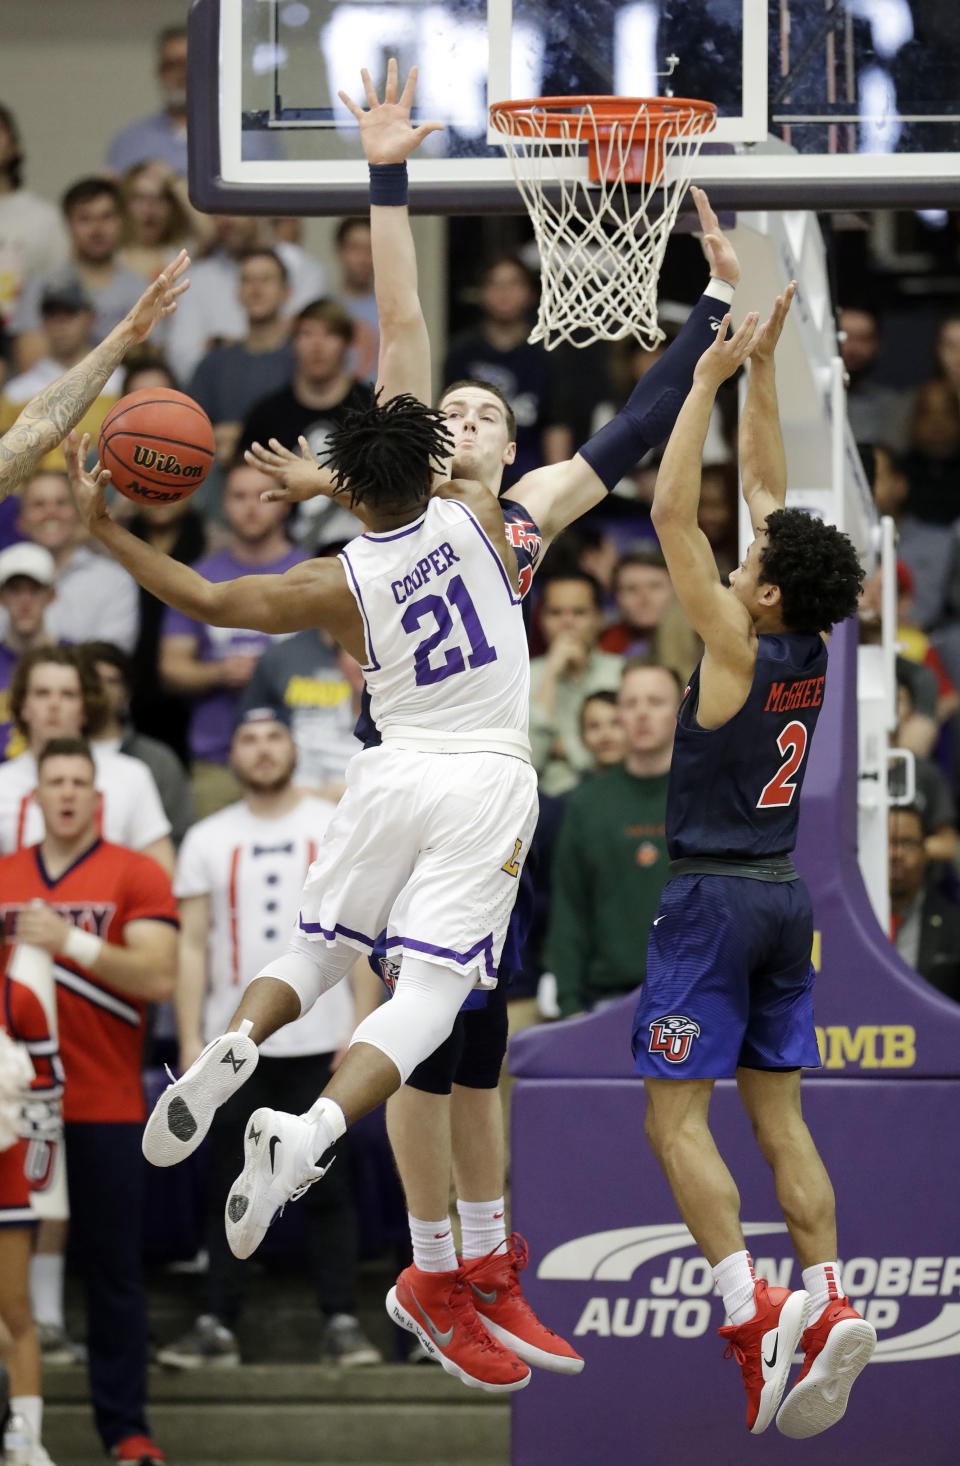 Lipscomb guard Kenny Cooper (21) drives against Liberty forward Scottie James and guard Darius McGhee (2) in the first half of the Atlantic Sun NCAA college basketball tournament championship game Sunday, March 10, 2019, in Nashville, Tenn. (AP Photo/Mark Humphrey)